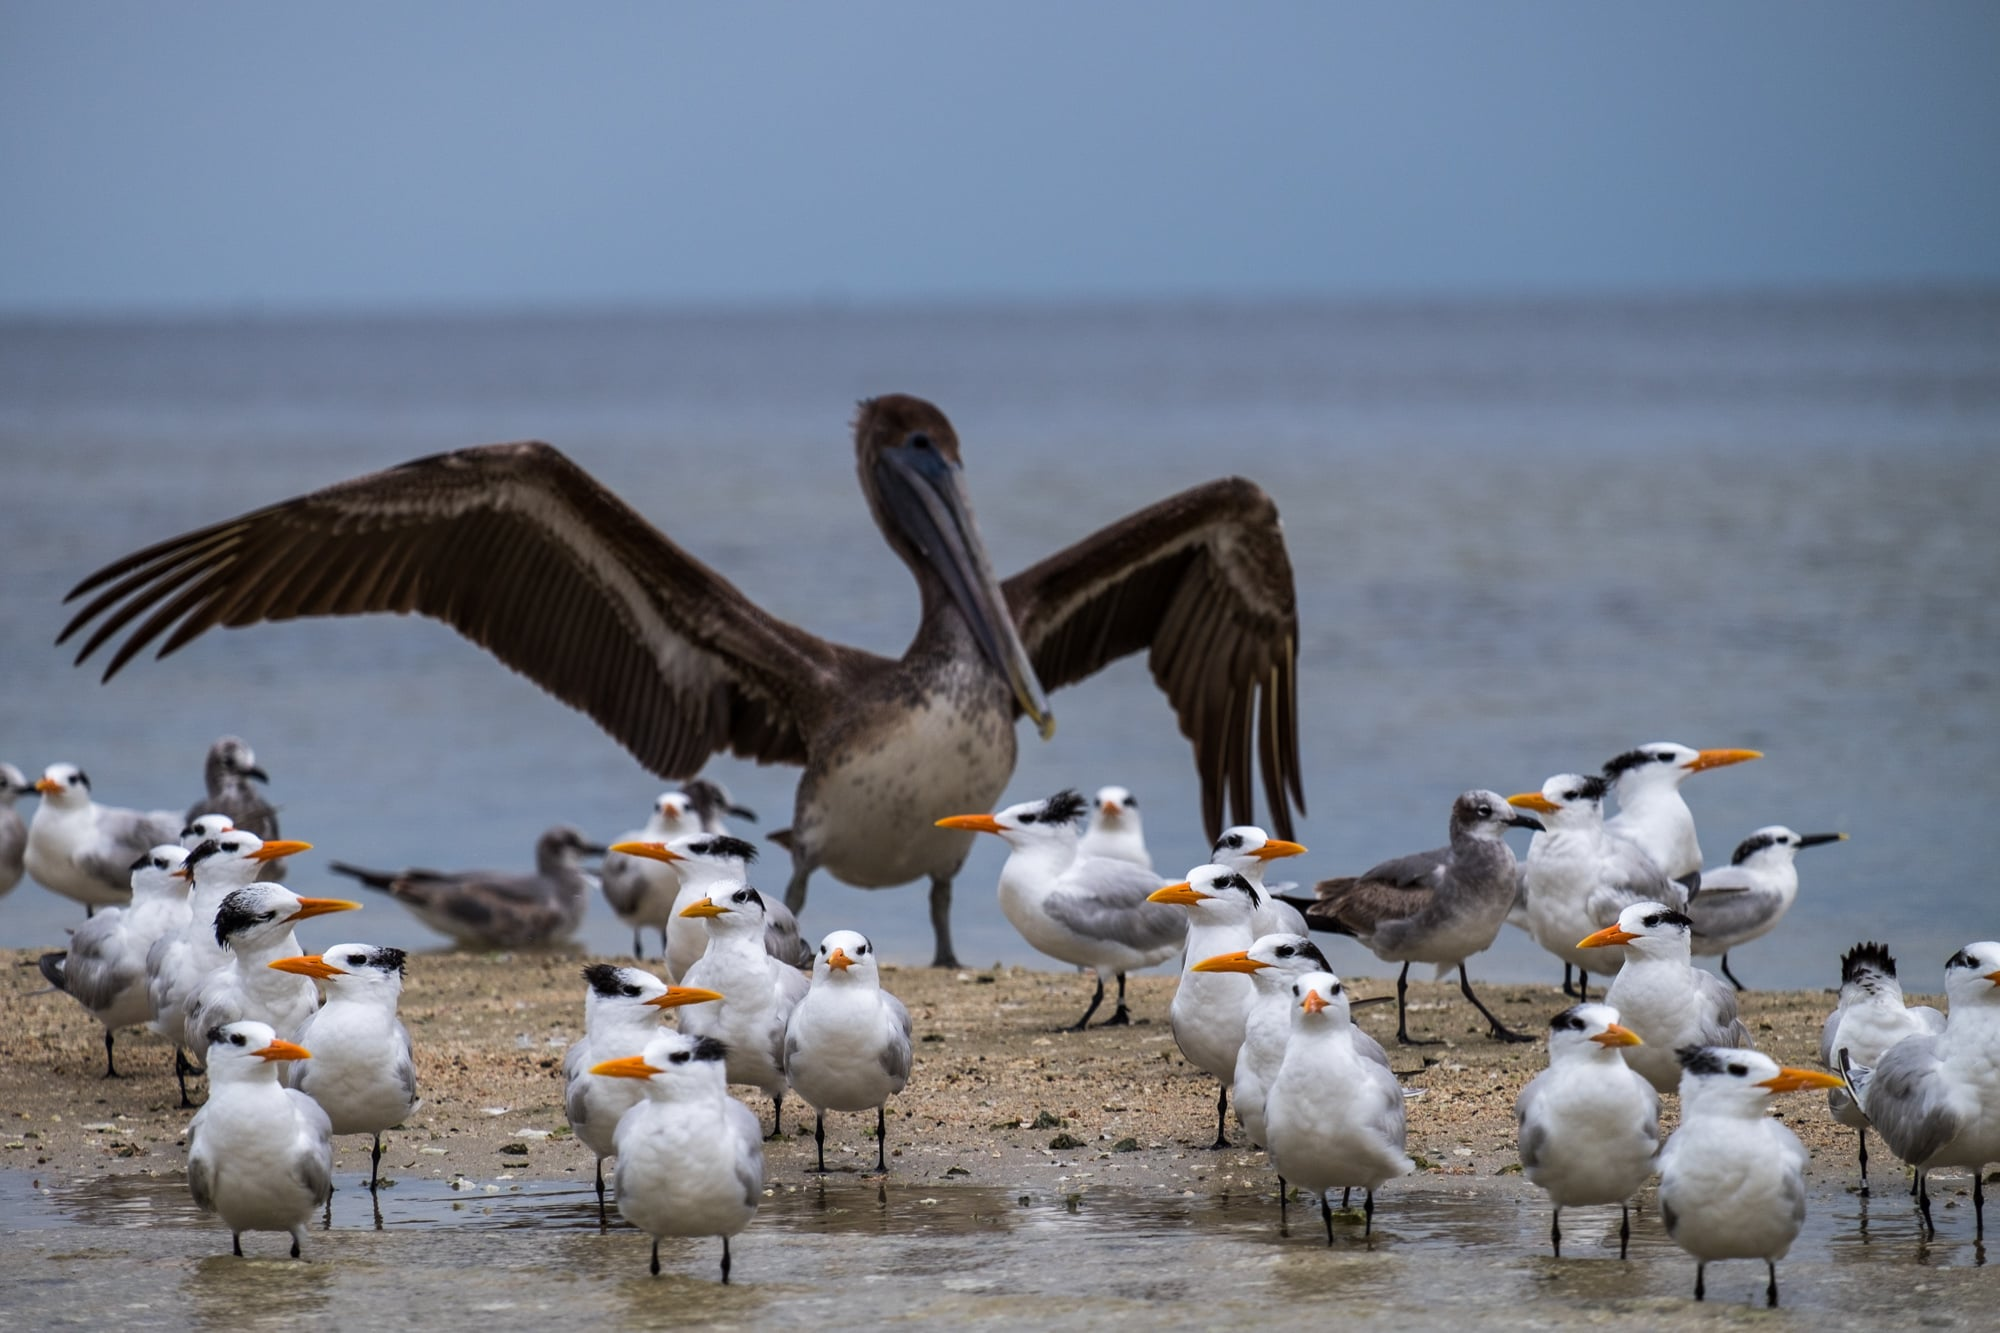 A brown pelican shows who's the boss.